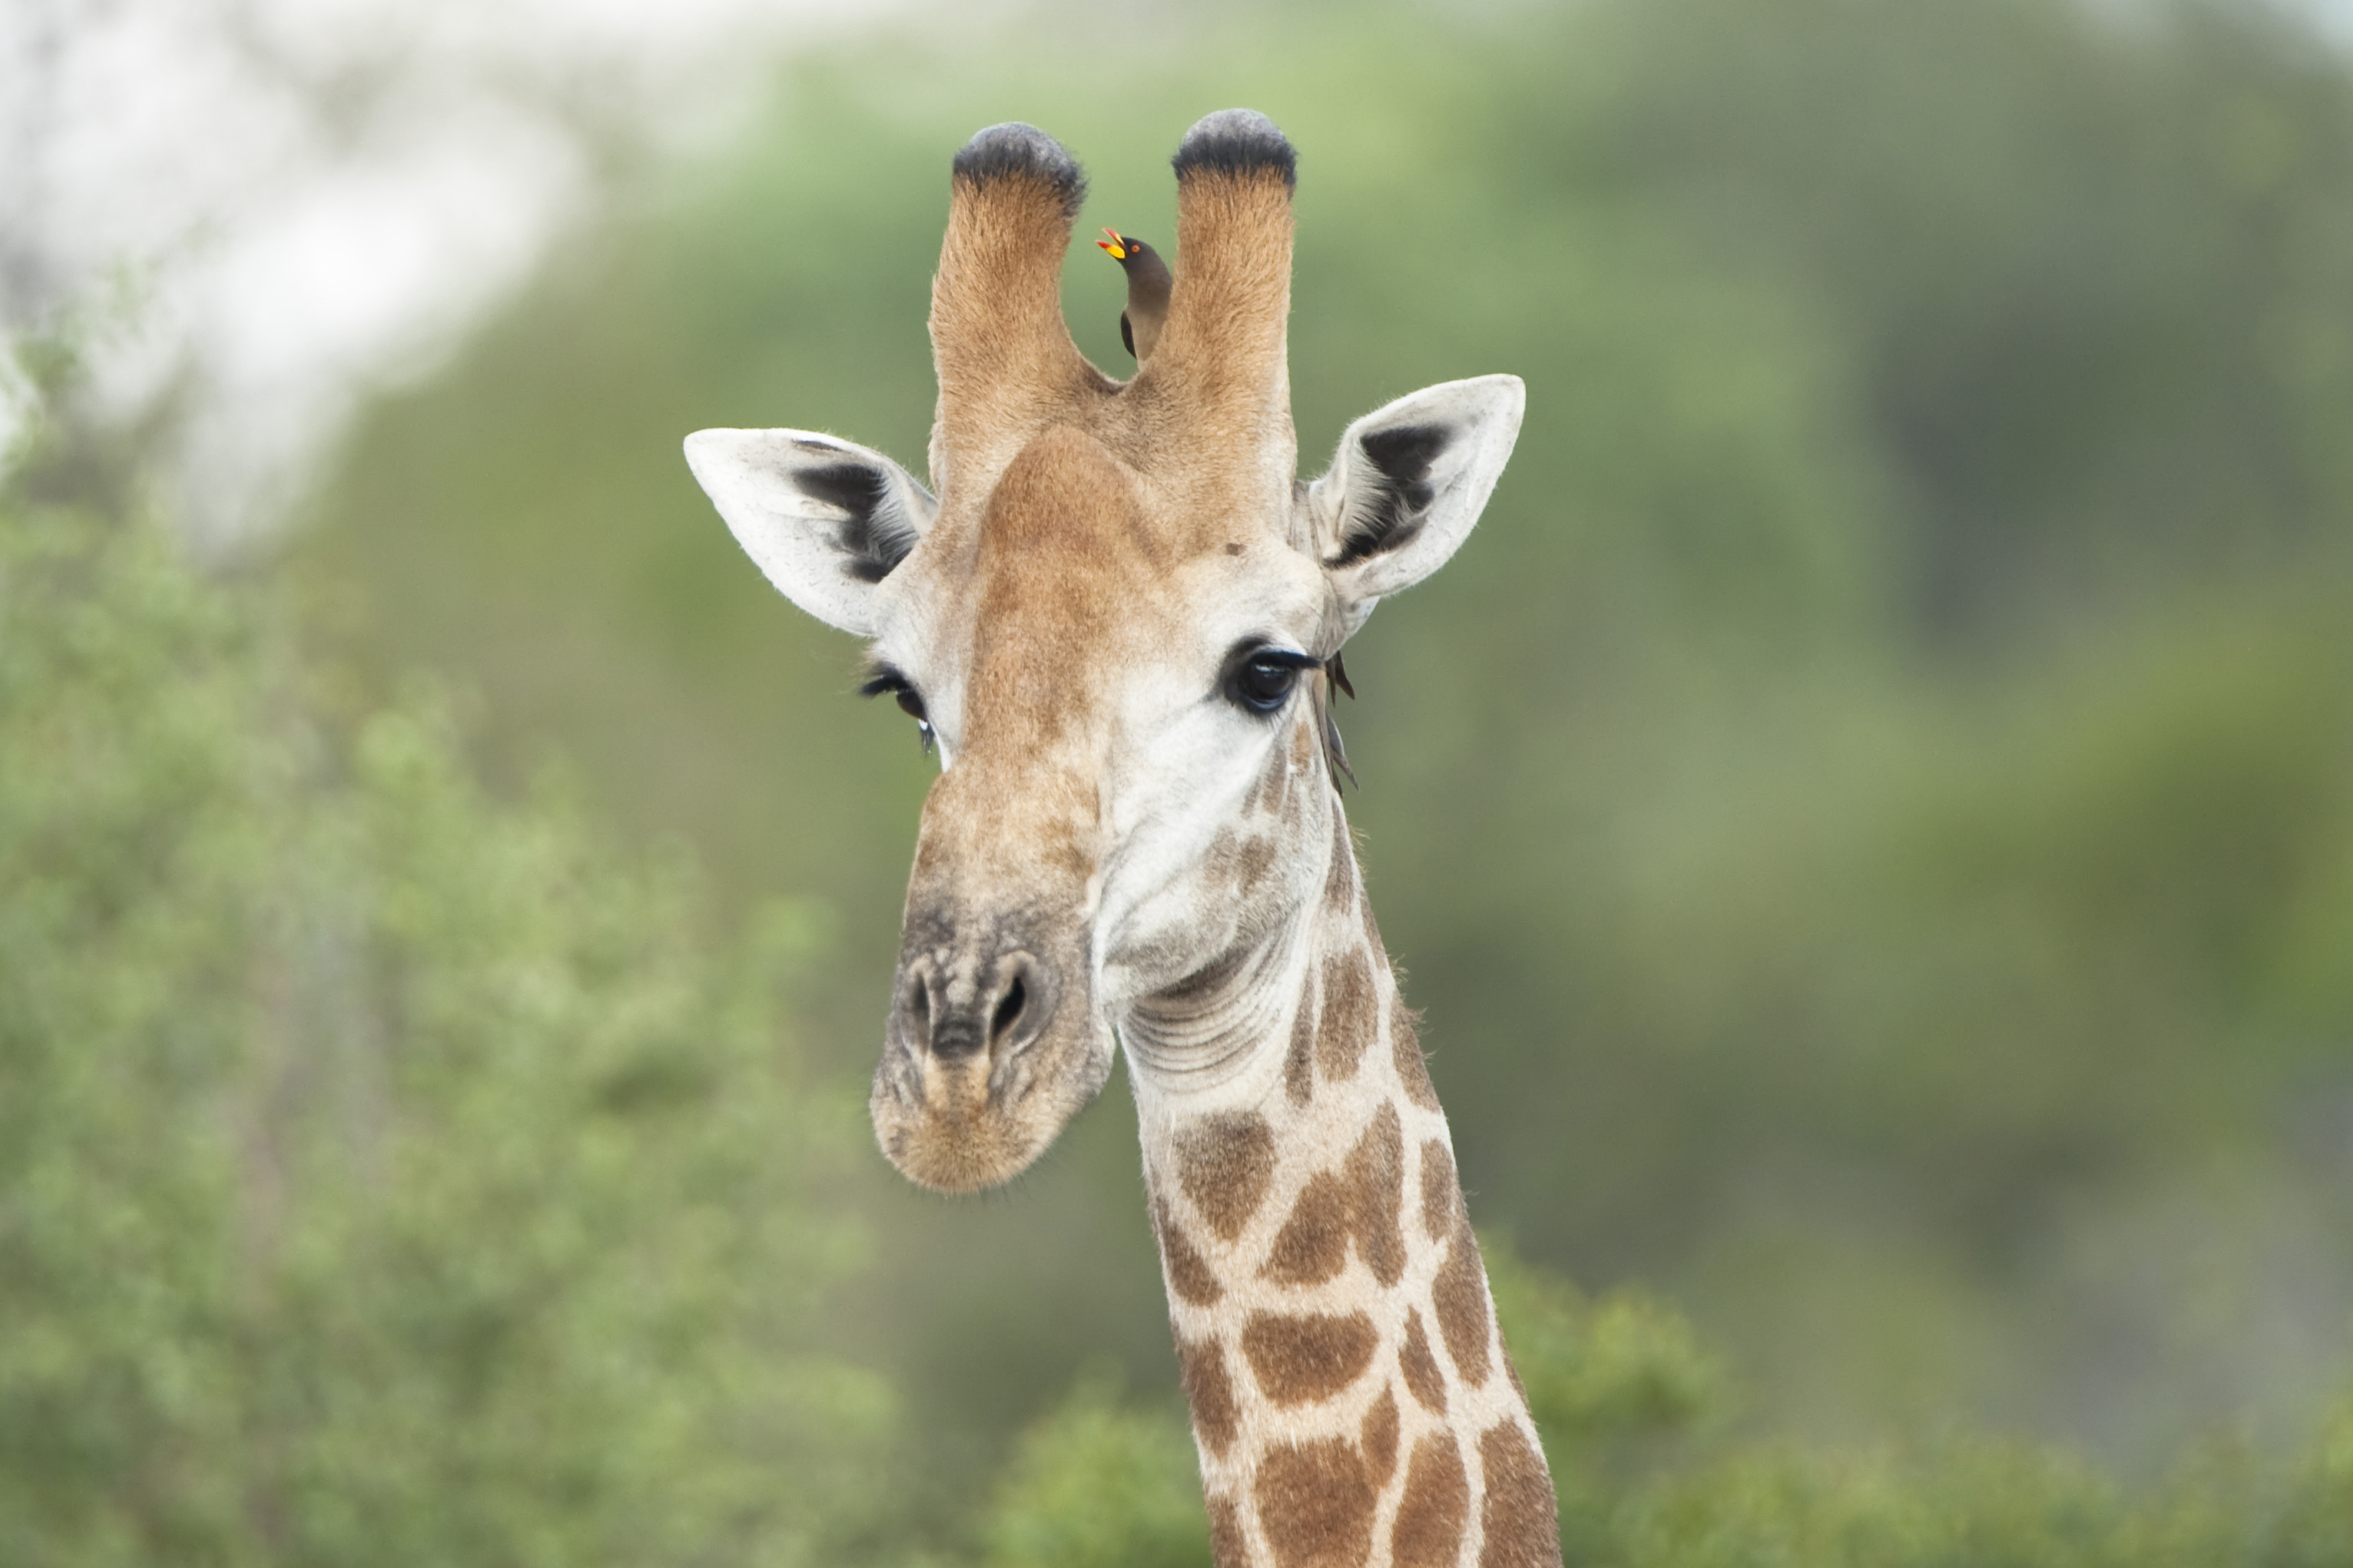 Giraffe with Red-billed Oxpecker II, ZA ©Johannes Ratermann